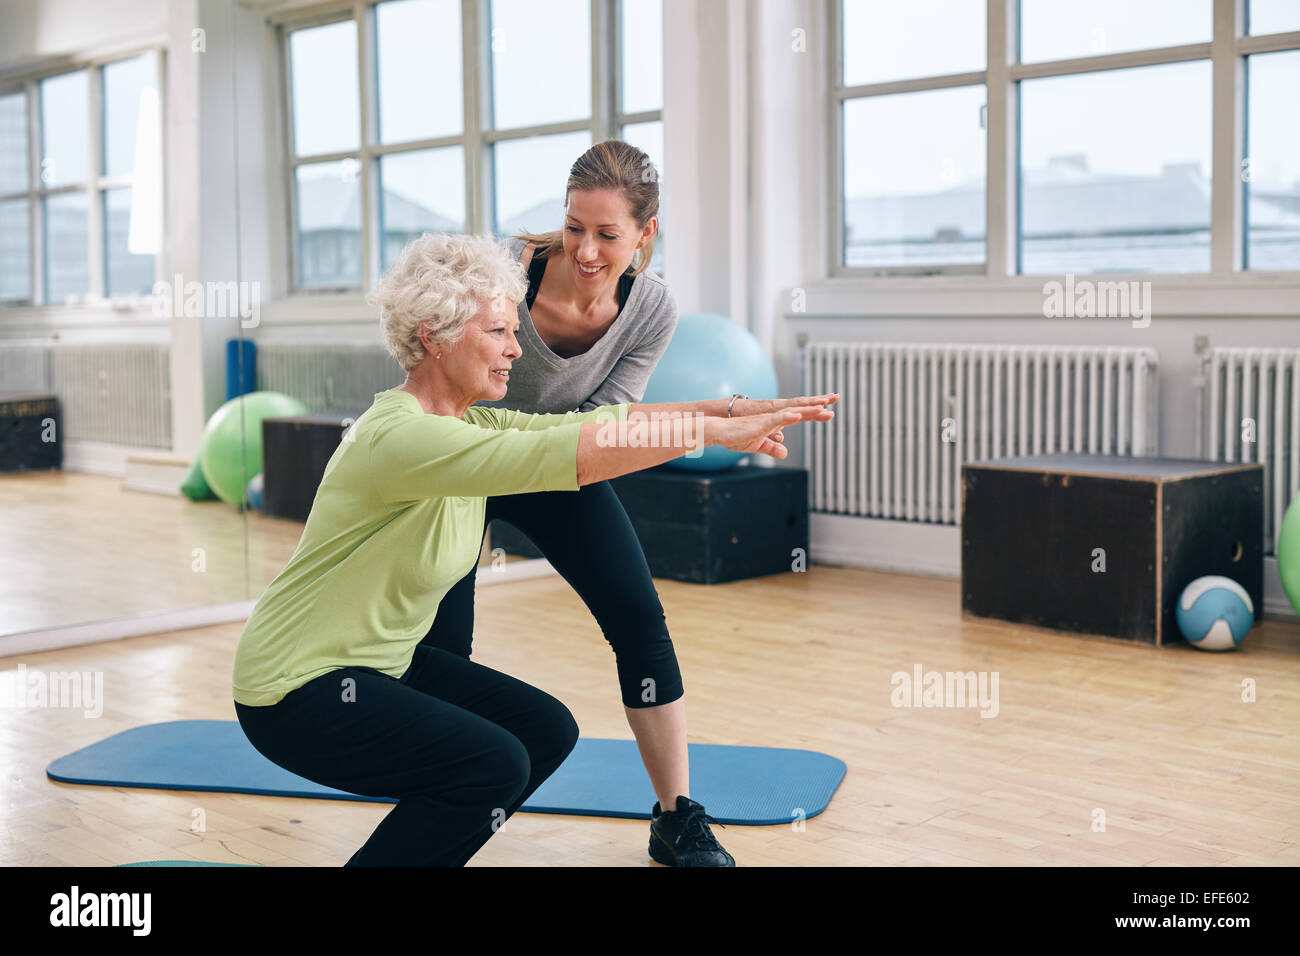 Elderly woman doing exercise with her personal trainer at gym. Gym instructor assisting senior woman in her workout. - Stock Image